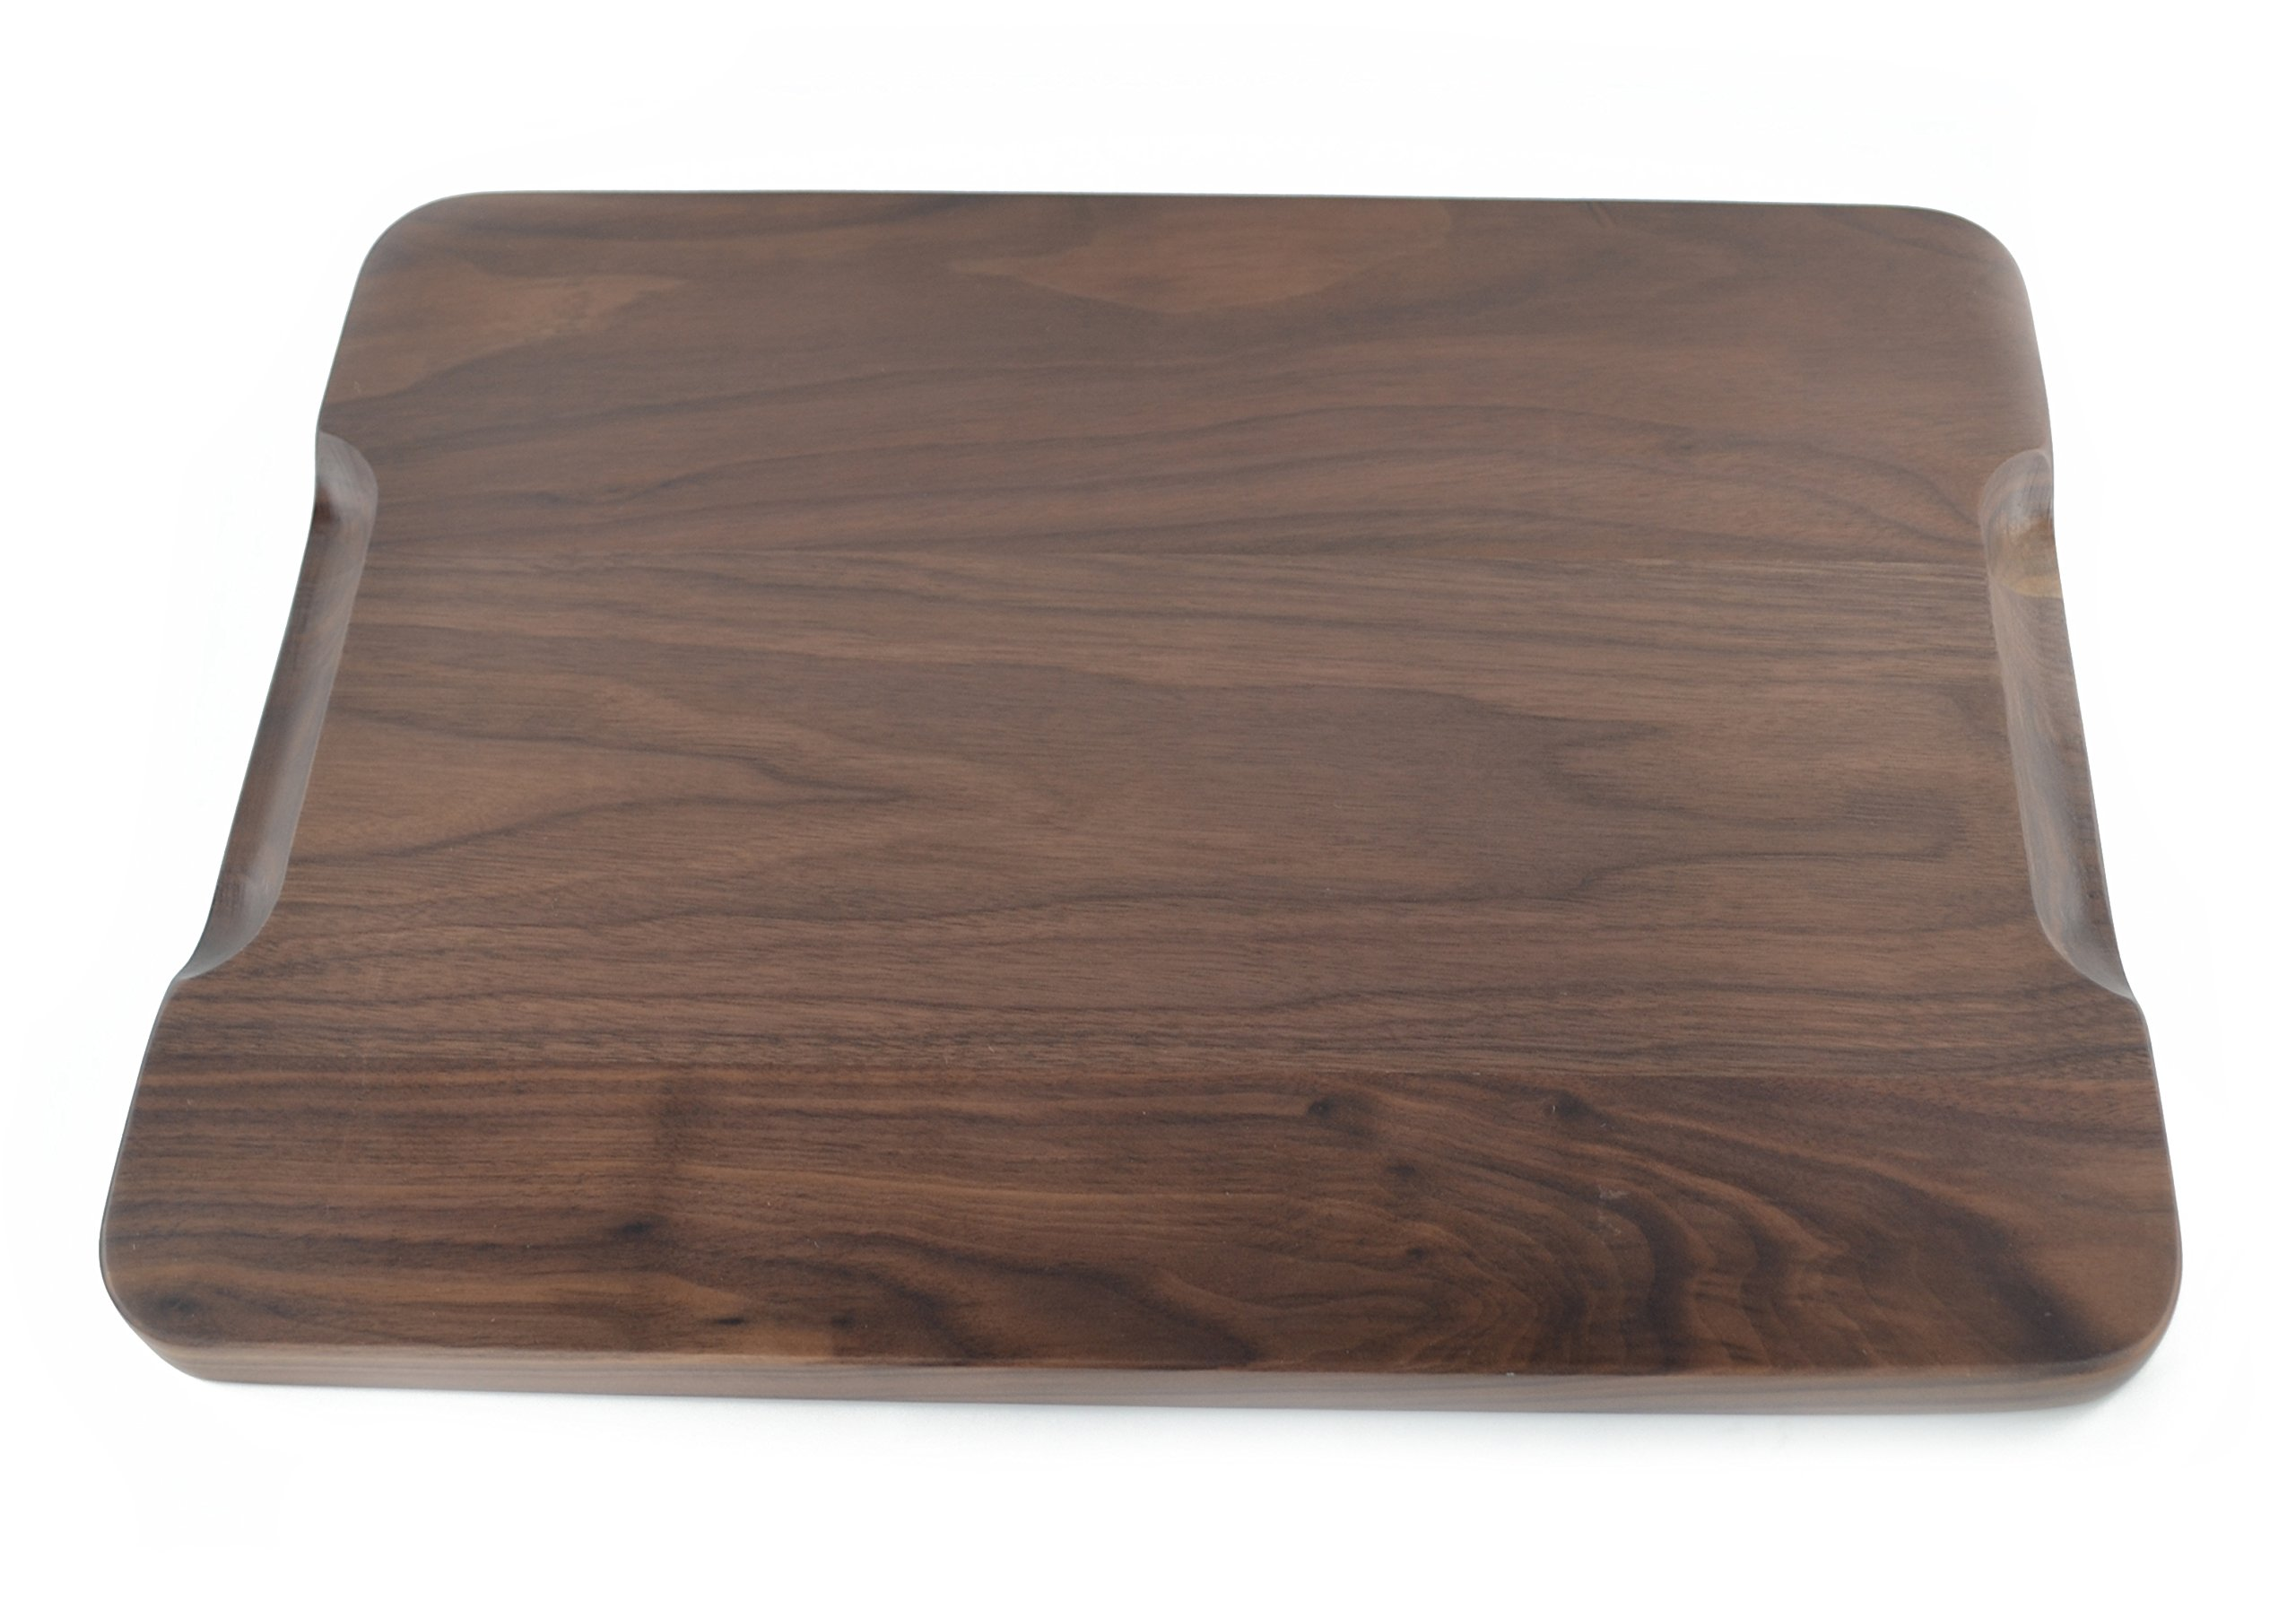 Samyo Black Walnut Solid Wood Rectangular Tableware Serving Tray Handcrafted Decorative Trays Food Tray Serving Platters with gripper for Coffee Wine Cocktail Fruit Meals (Large Size) by SAMYO (Image #3)